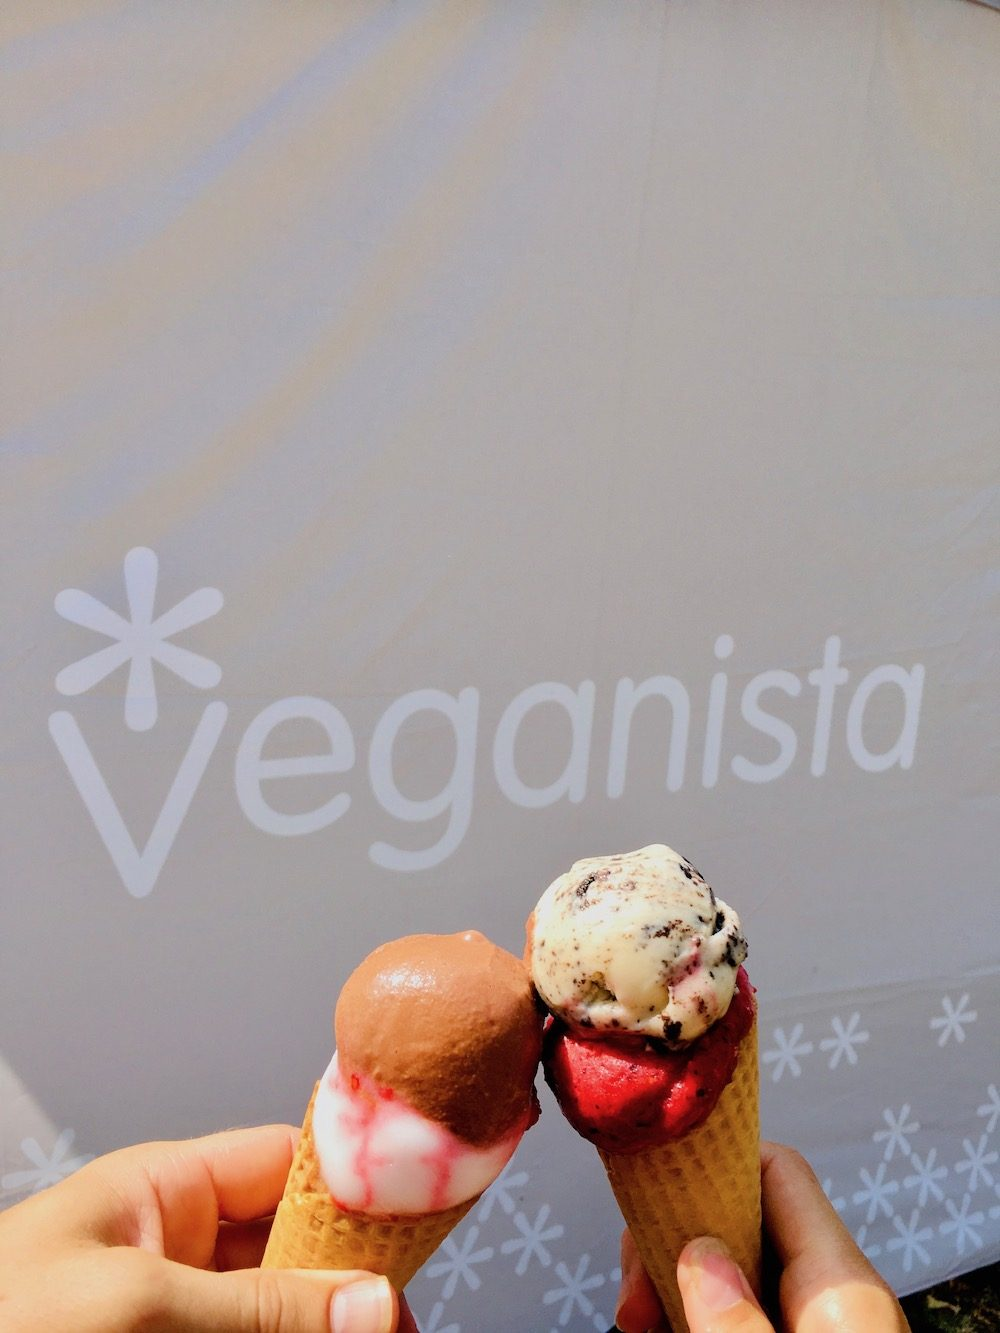 Two cones of ice cream in front of a Veganista banner